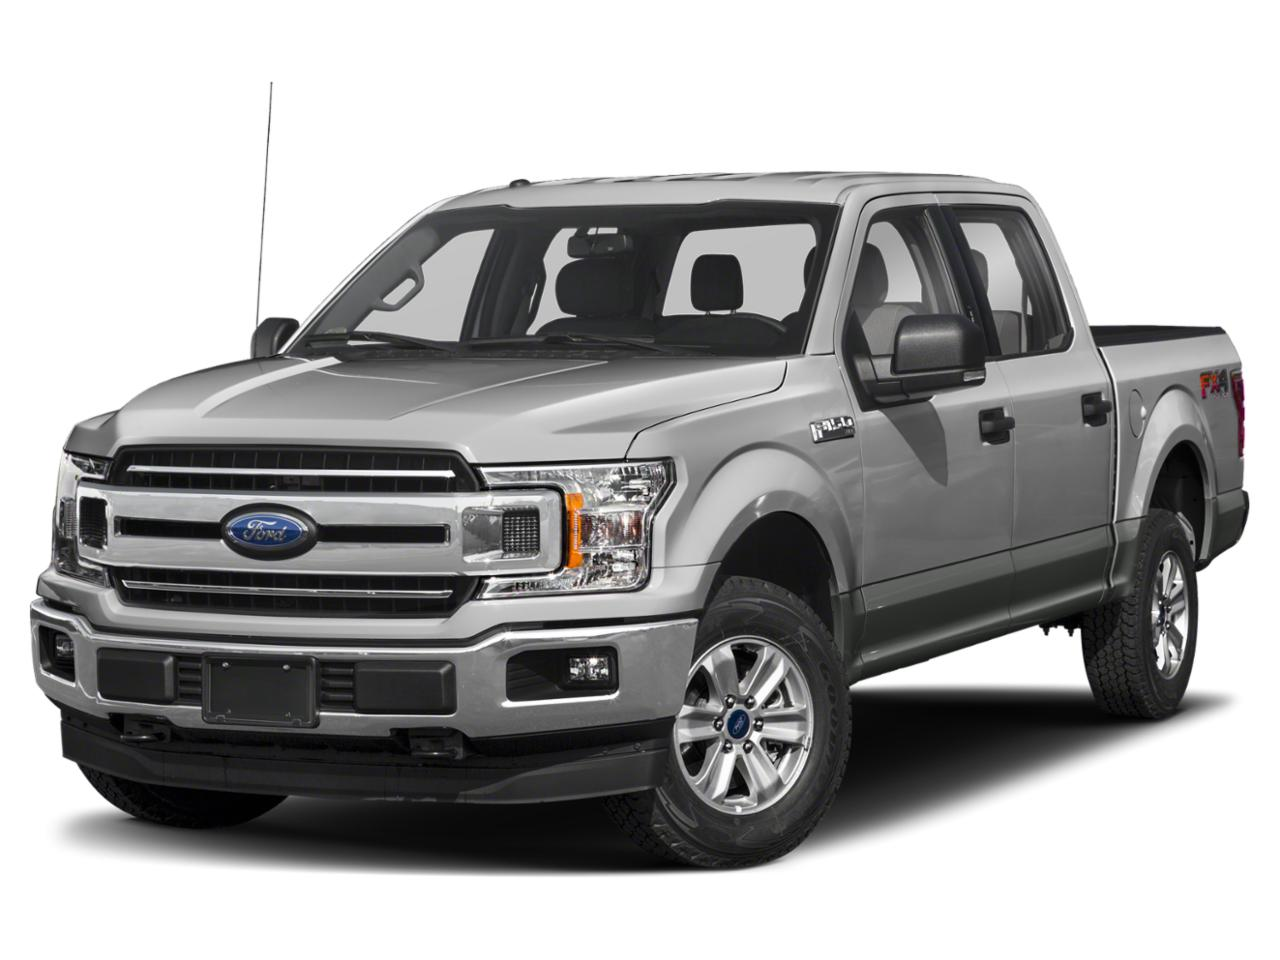 2018 Ford F-150 Vehicle Photo in Gainesville, TX 76240